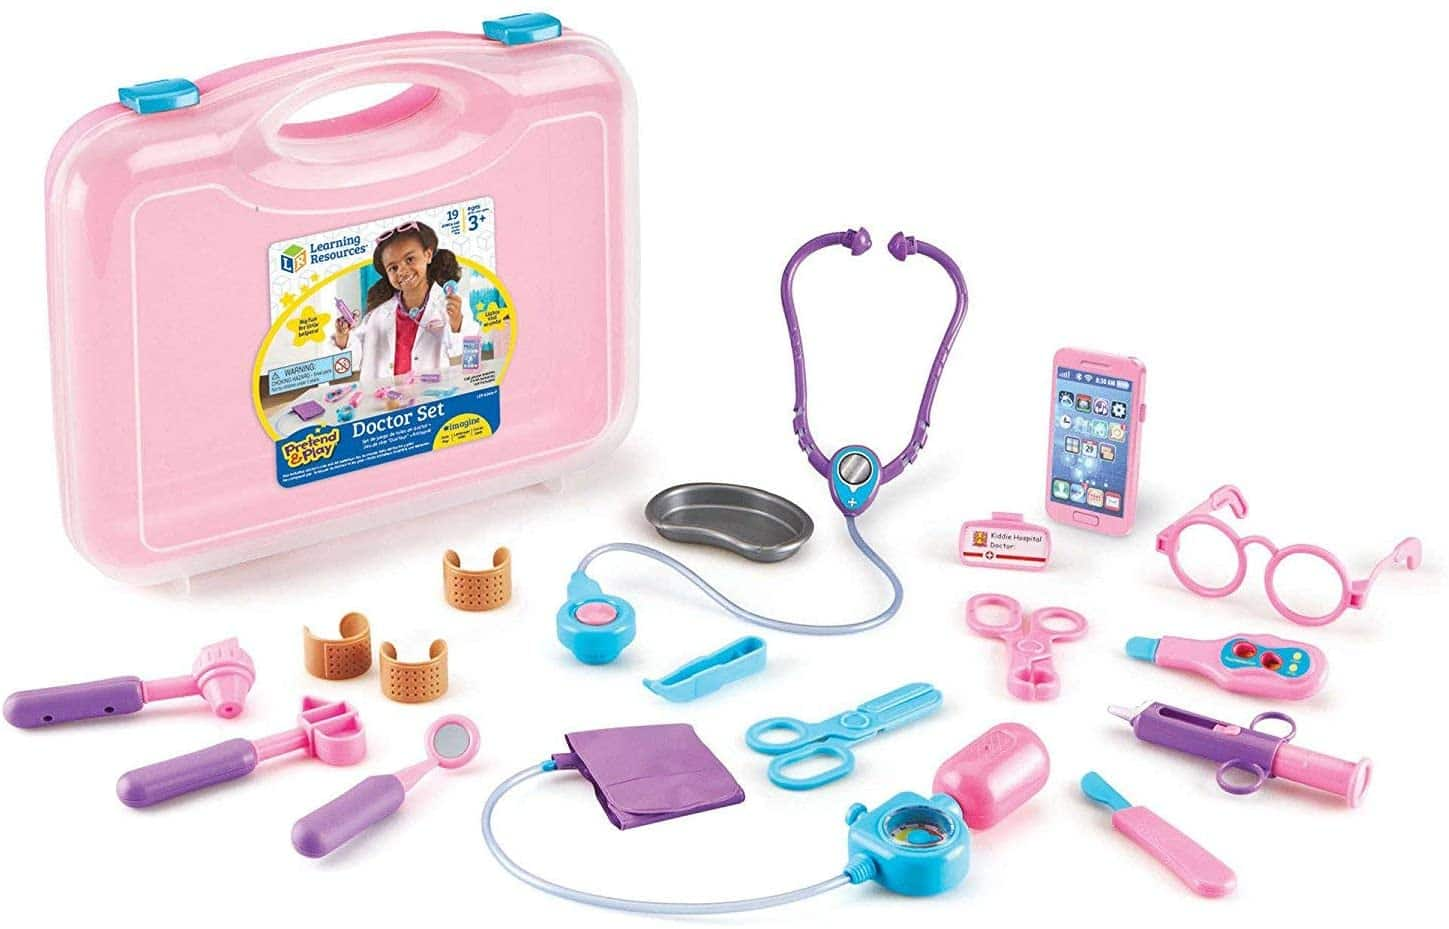 19-Pc Learning Resources Pretend and Play Doctor Kit $18.10 + Free Shipping w/ Amazon Prime or Orders $25+